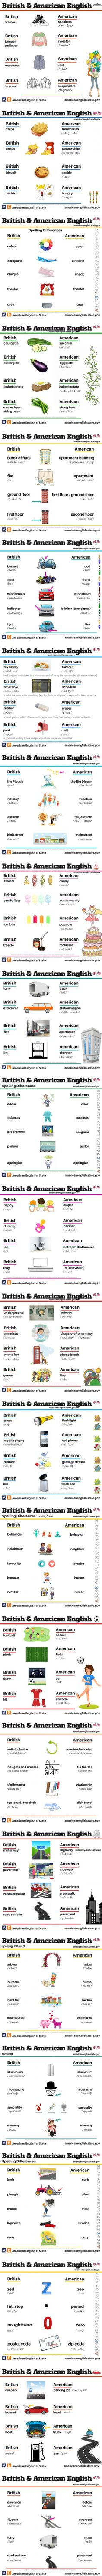 British Vs American English: Differences Illustrated: Now this is why i got confused in school, cuz they were teaching us American and British English together not just American English alone. I feel so good right now to know this finally. English Tips, English Class, English Words, English Lessons, English Grammar, Teaching English, Learn English, English Language, Second Language